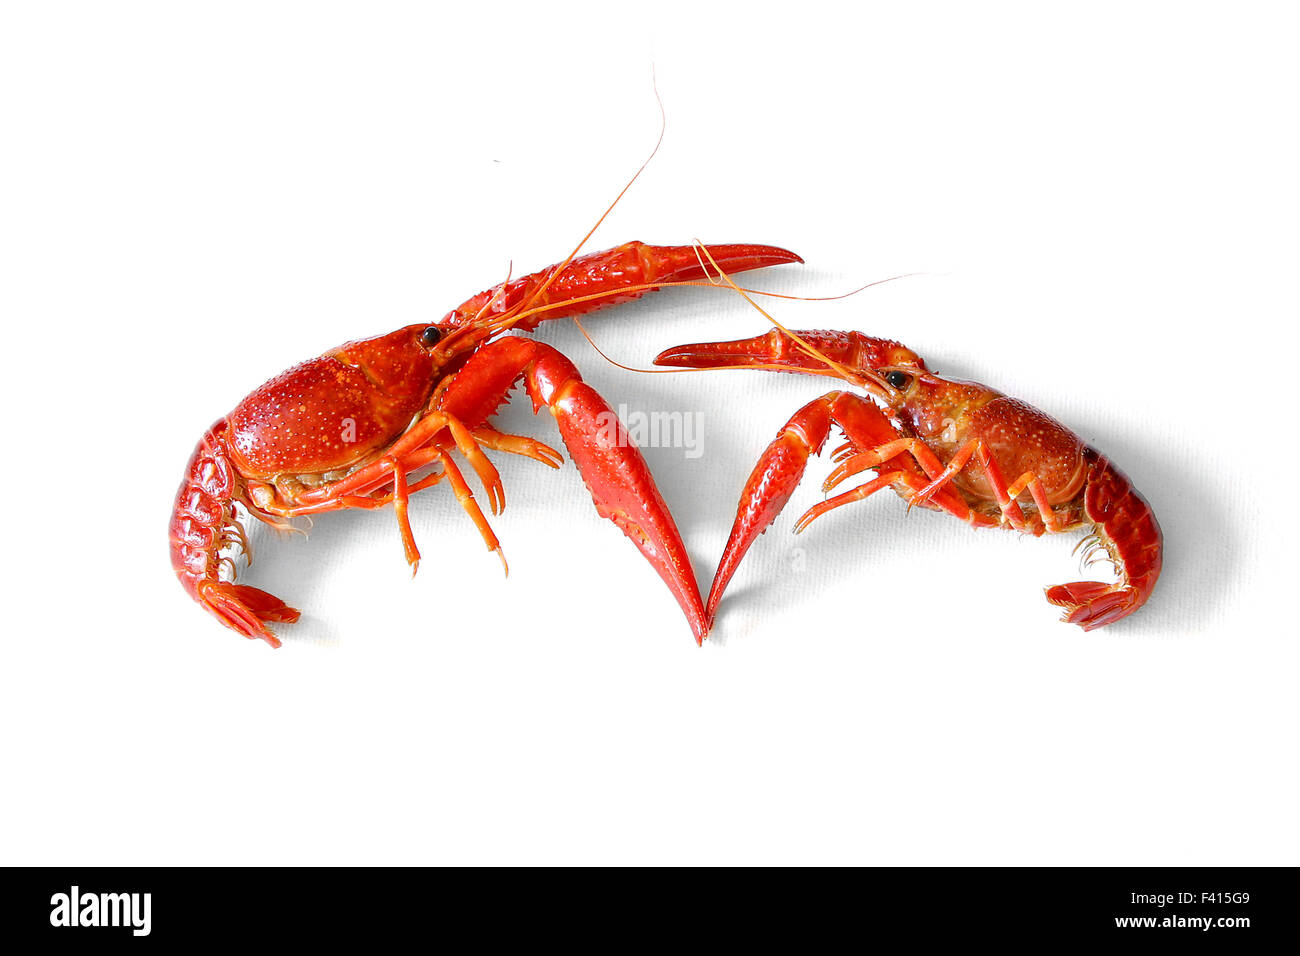 fighting two freshwater crayfish red european on white background